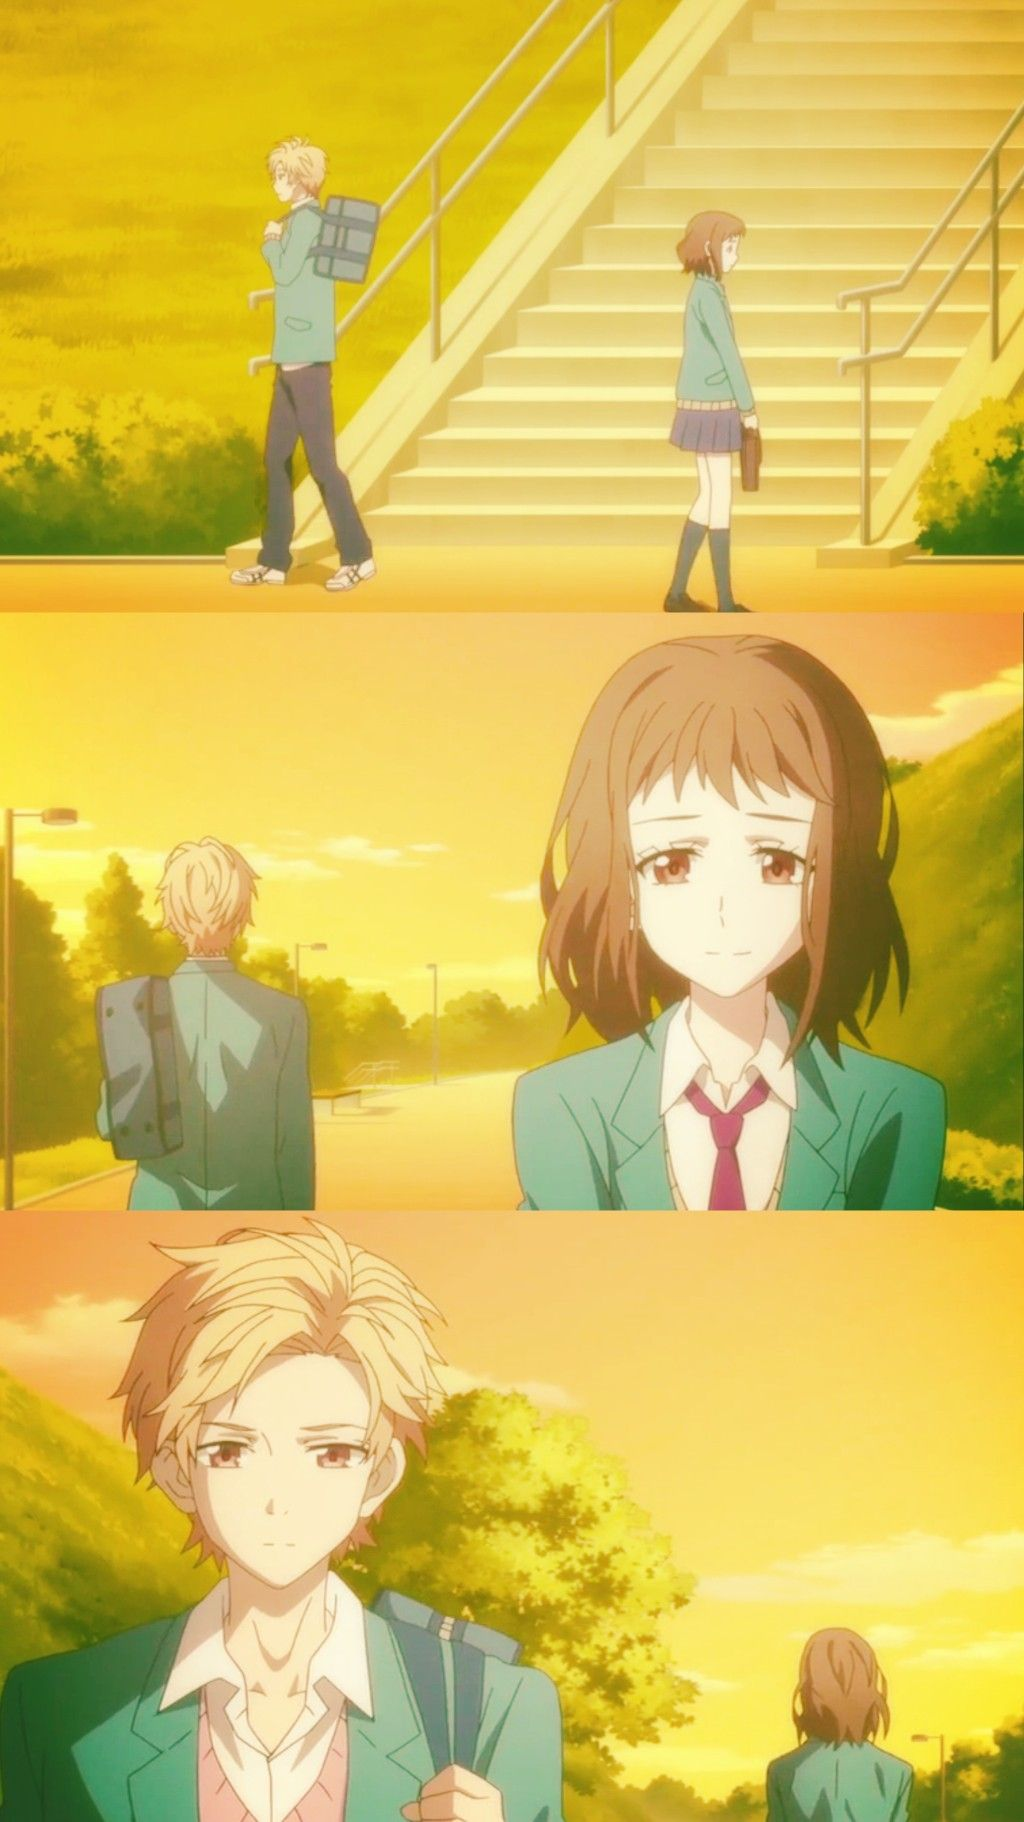 Our Love Has Always Been 10 Centimeters Apart : always, centimeters, apart, Haruki, Always, Apart, Romantic, Anime,, Romance, Anime